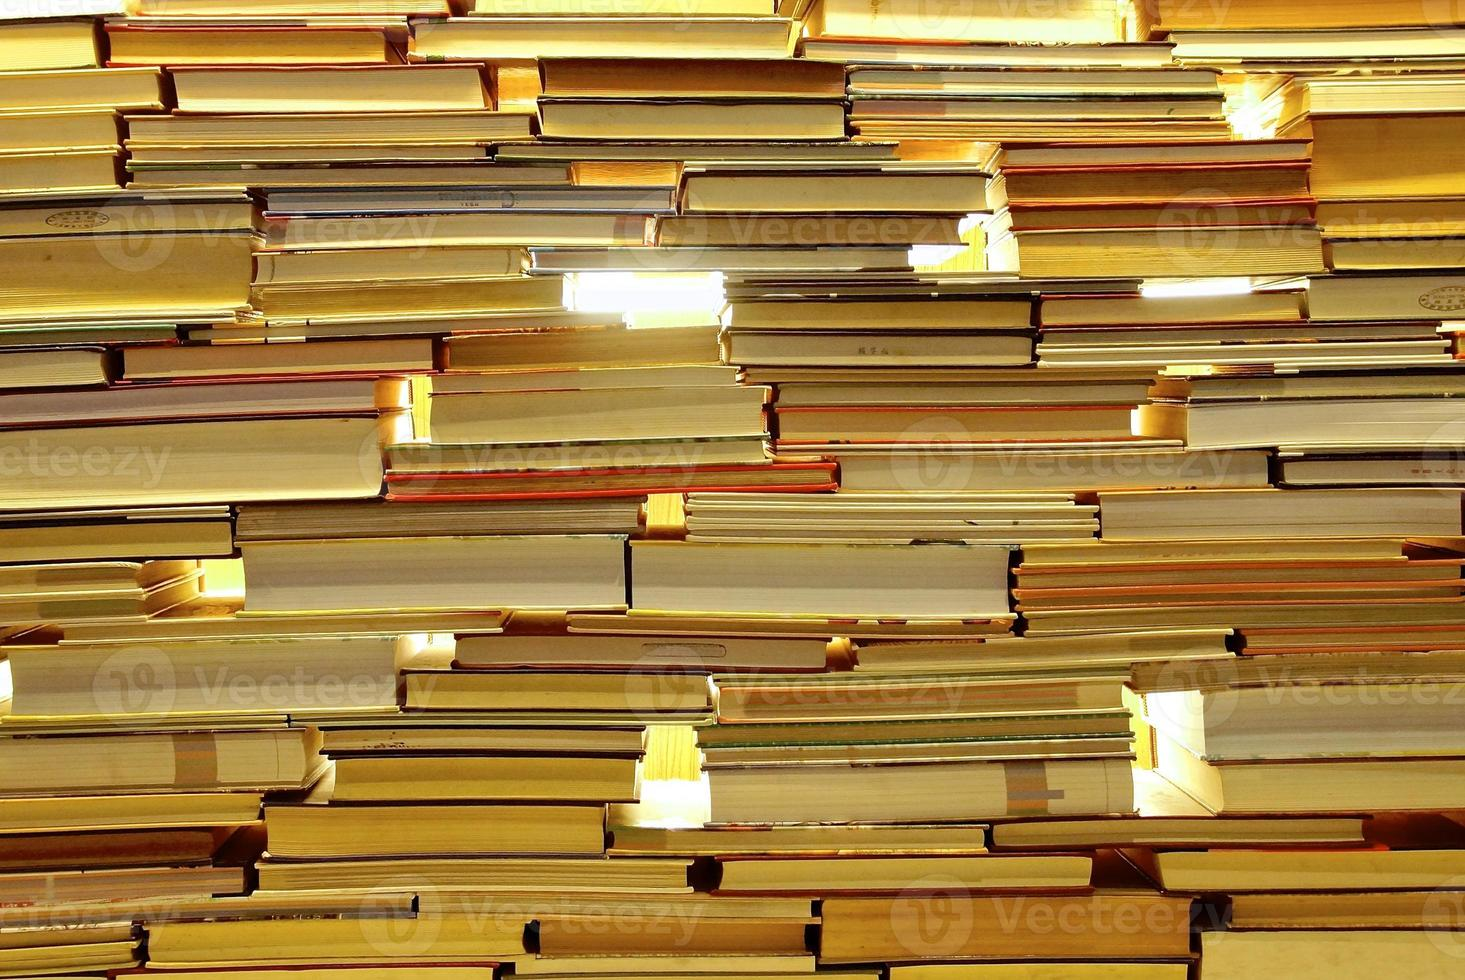 Stacks of books forming a wall with see through holes photo